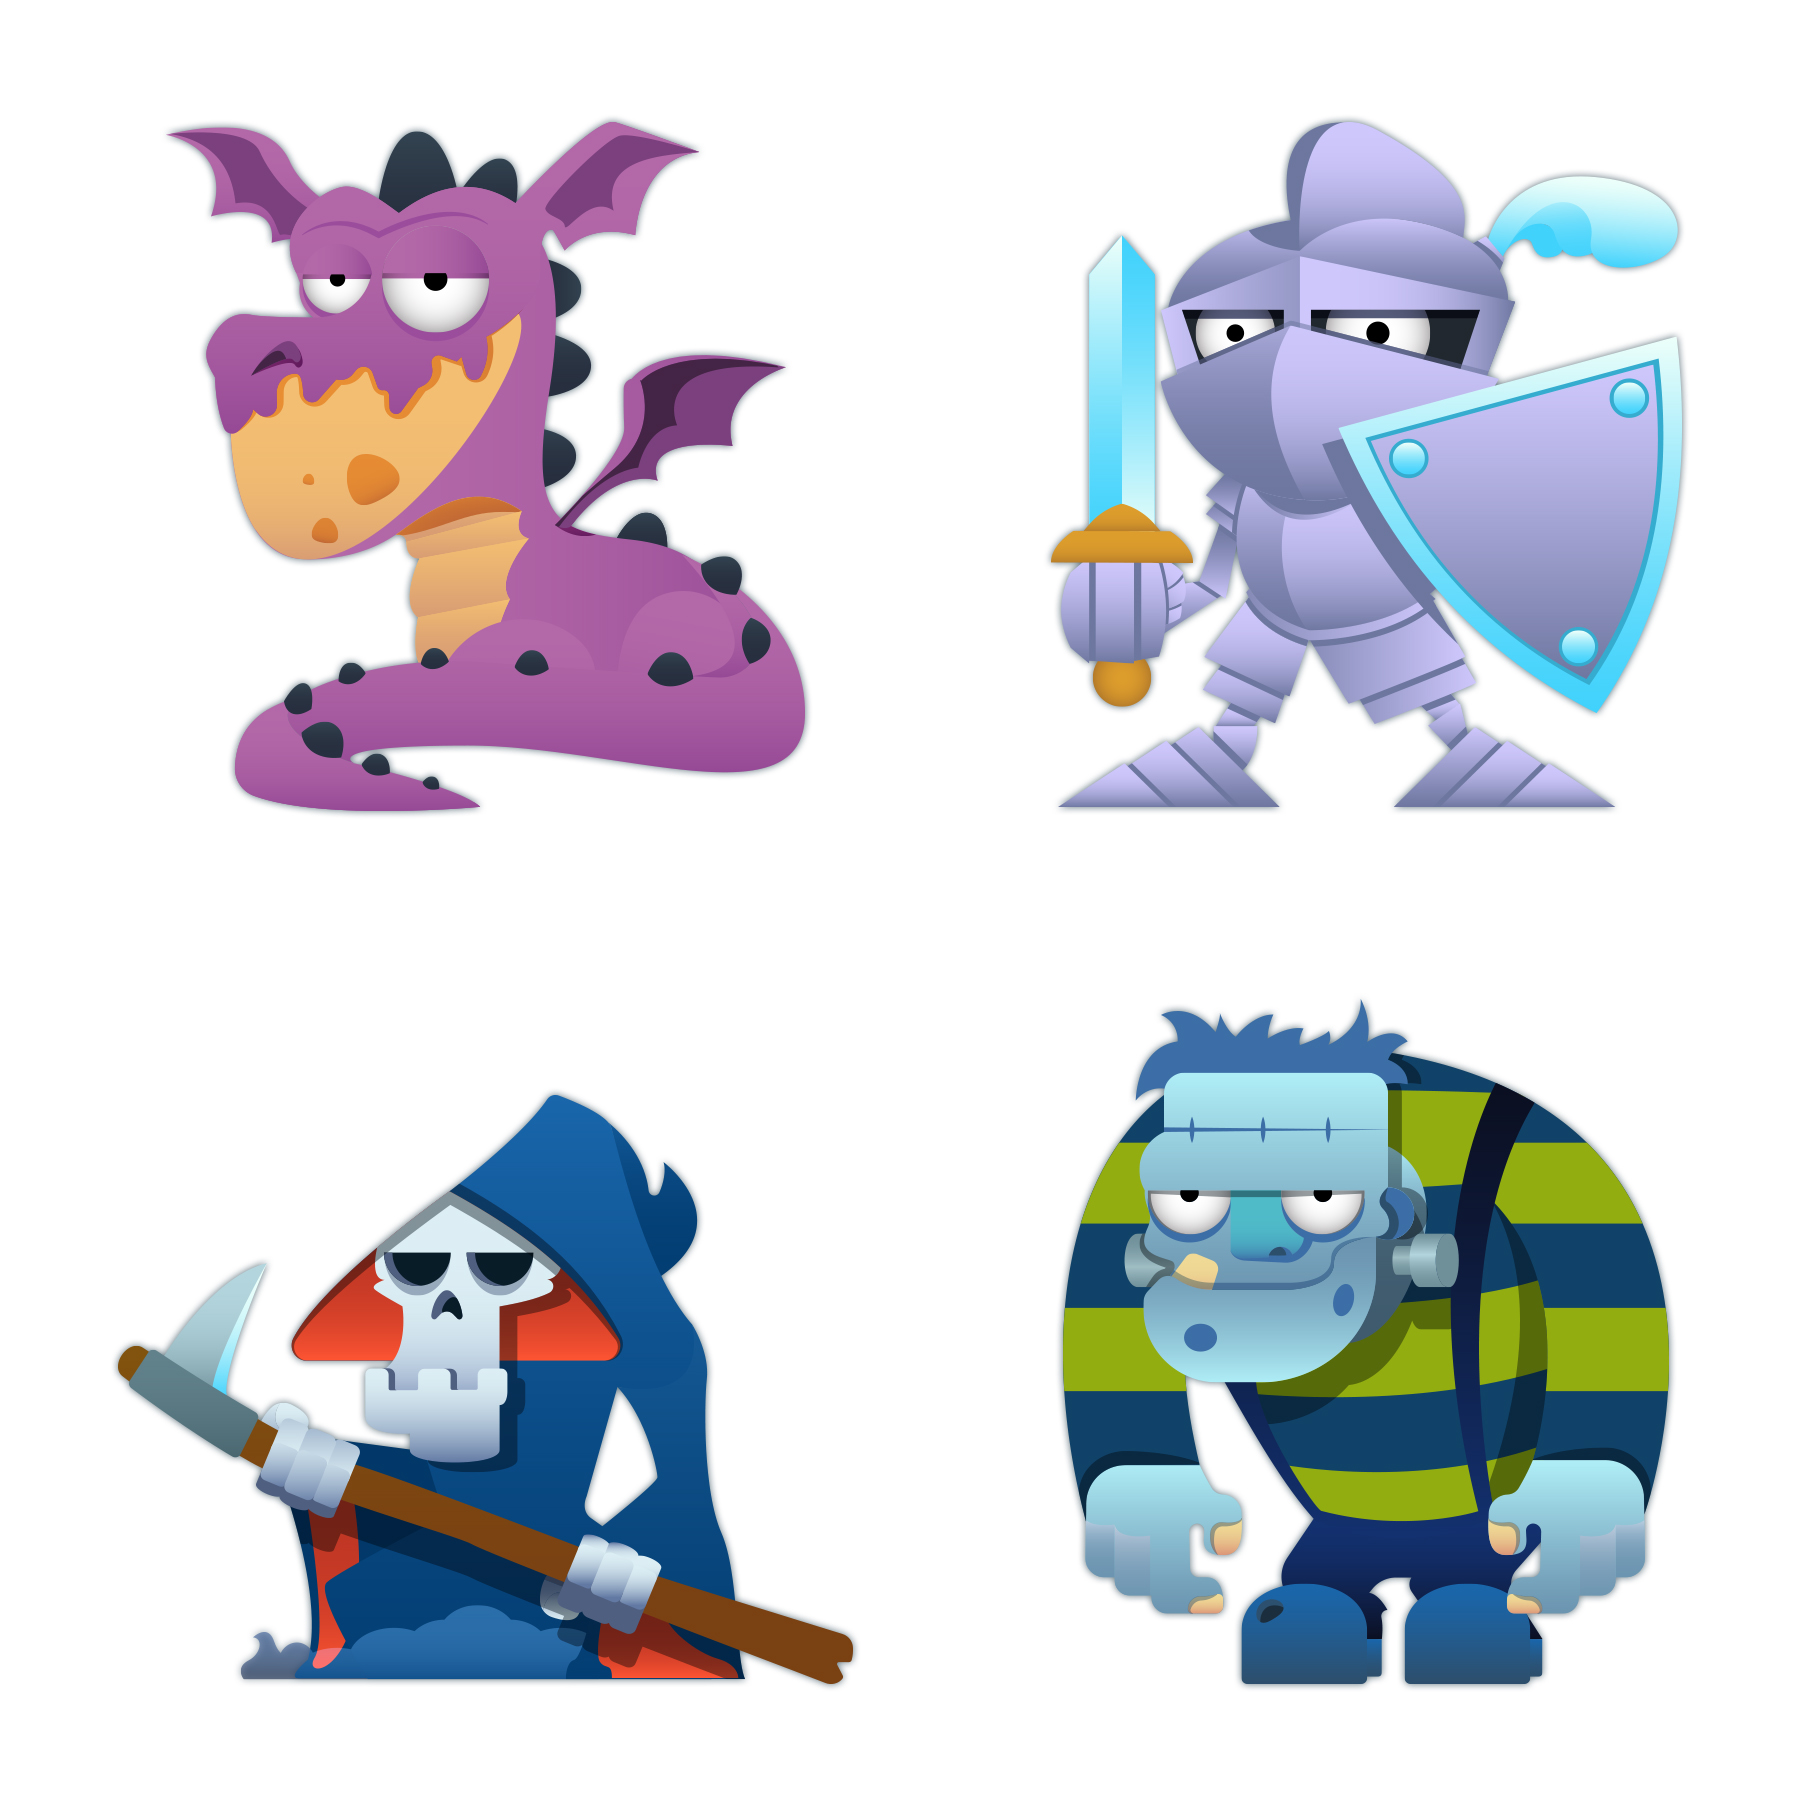 WordBrain Characters icons to the mobile game Wordbrain and word brain themes with different kinds of character design illustrations of fantasy creatures and animal icons in vector graphic